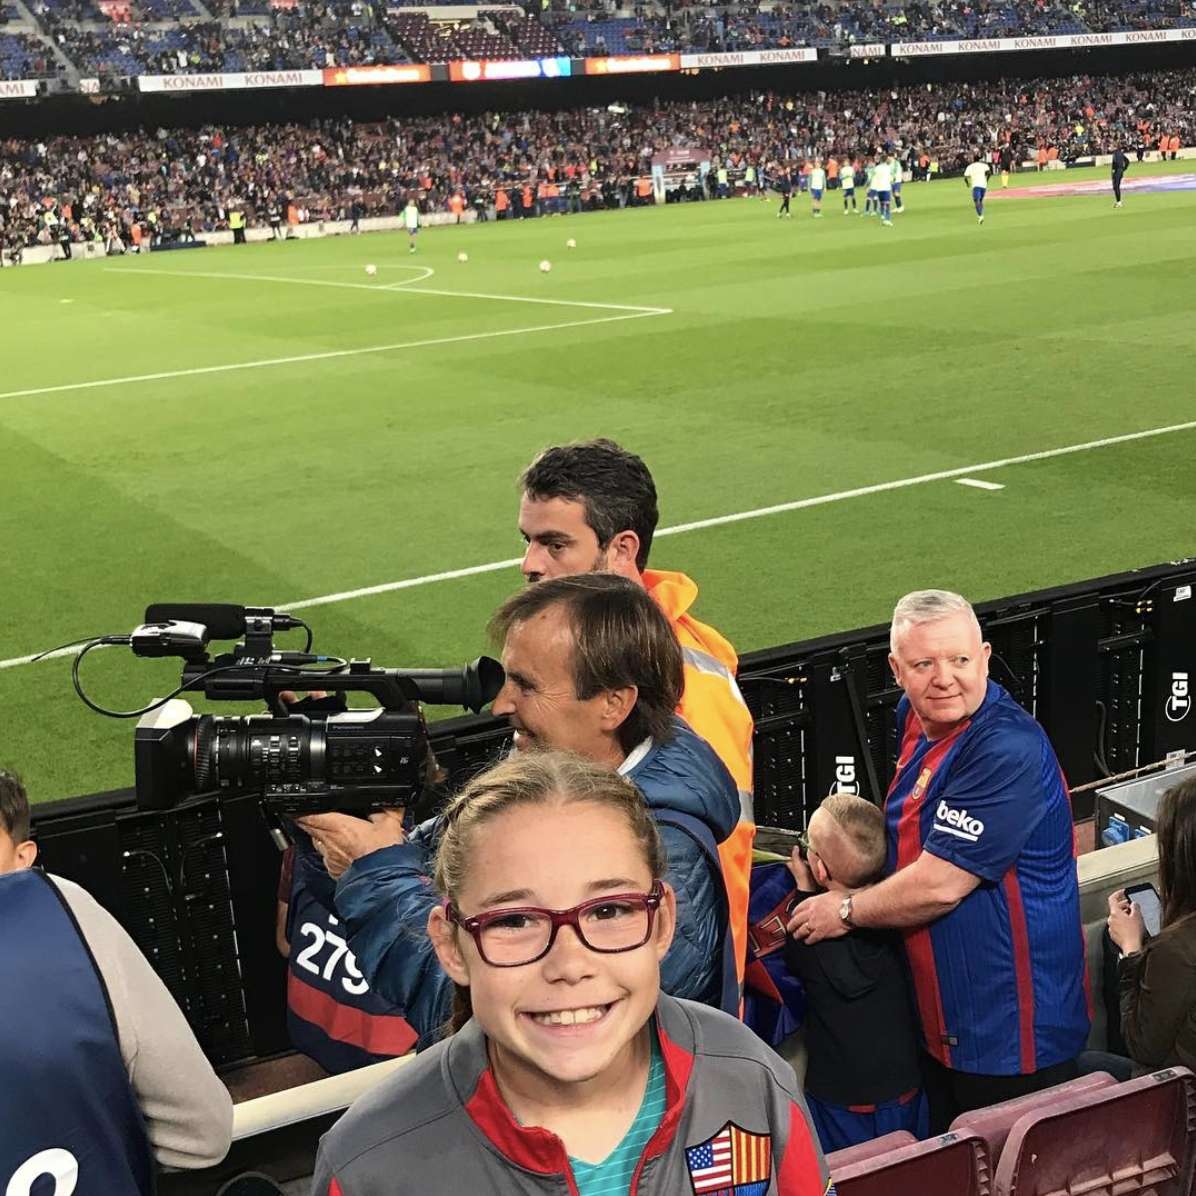 A photo of Olivia Moultrie at a Barca game in Barcelona, Spain from April 2017.